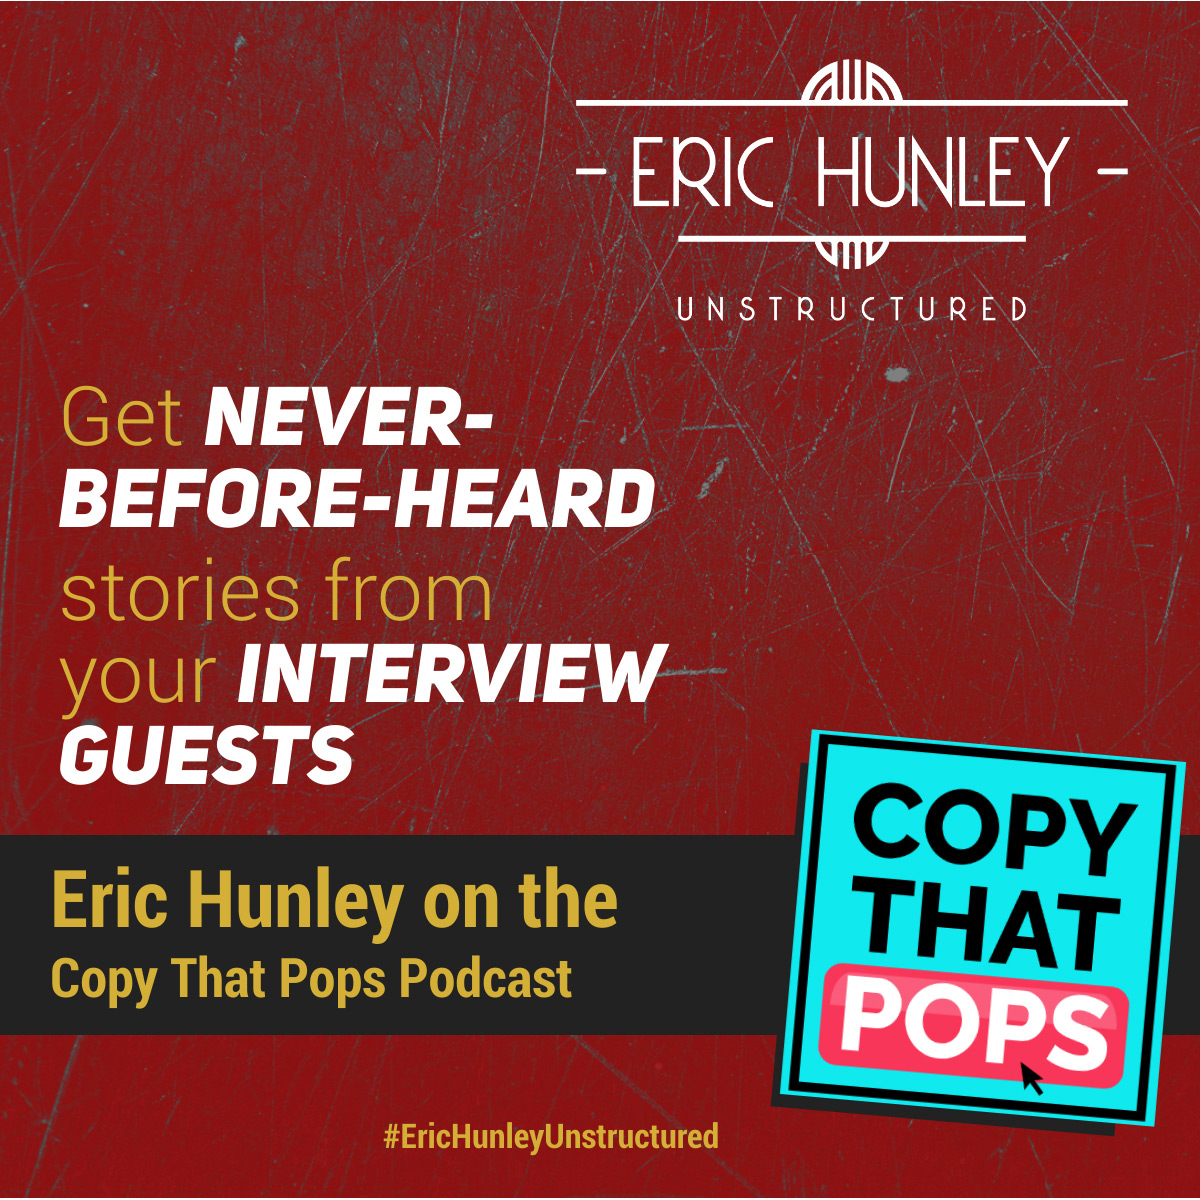 Eric Hunley Podcast Appearance Interviews - Copy That Pops Podcast Podcast Square Post